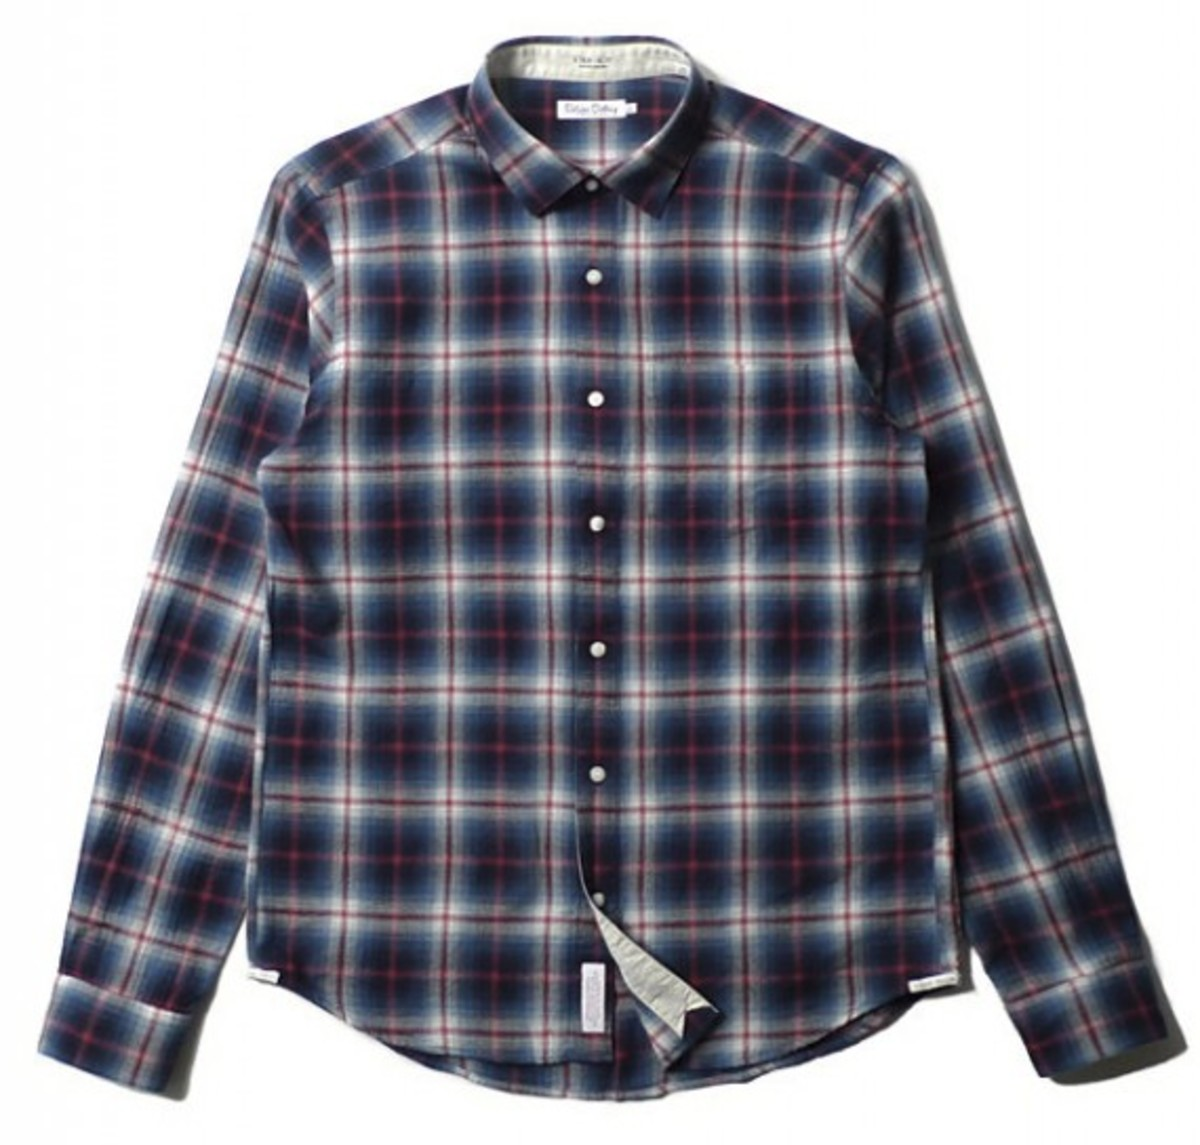 deluxe-greyhound-check-shirt-01